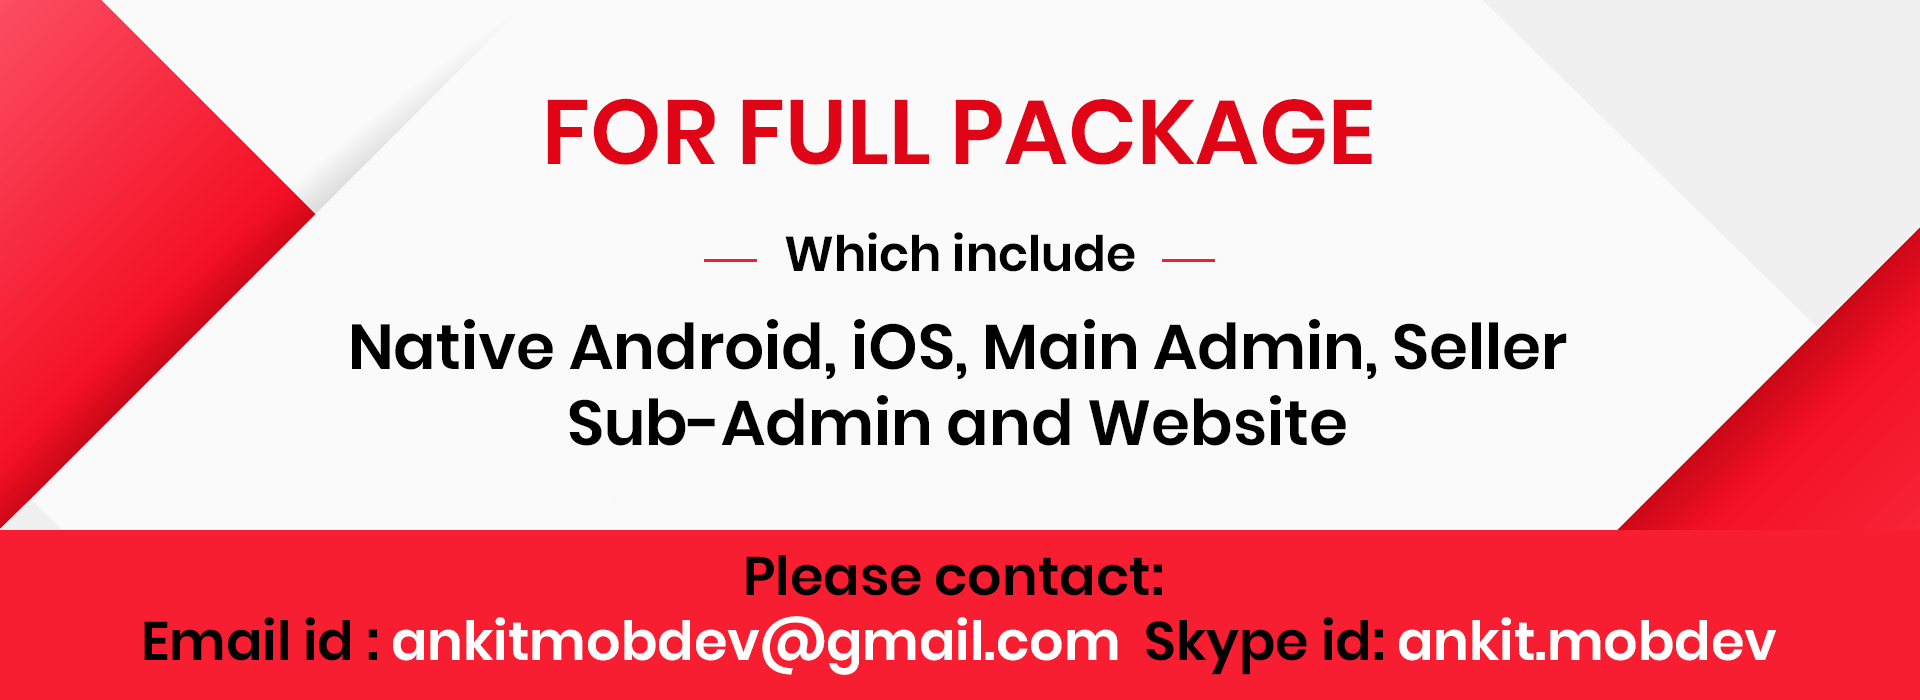 Multi-ecommerce android application developer for hire